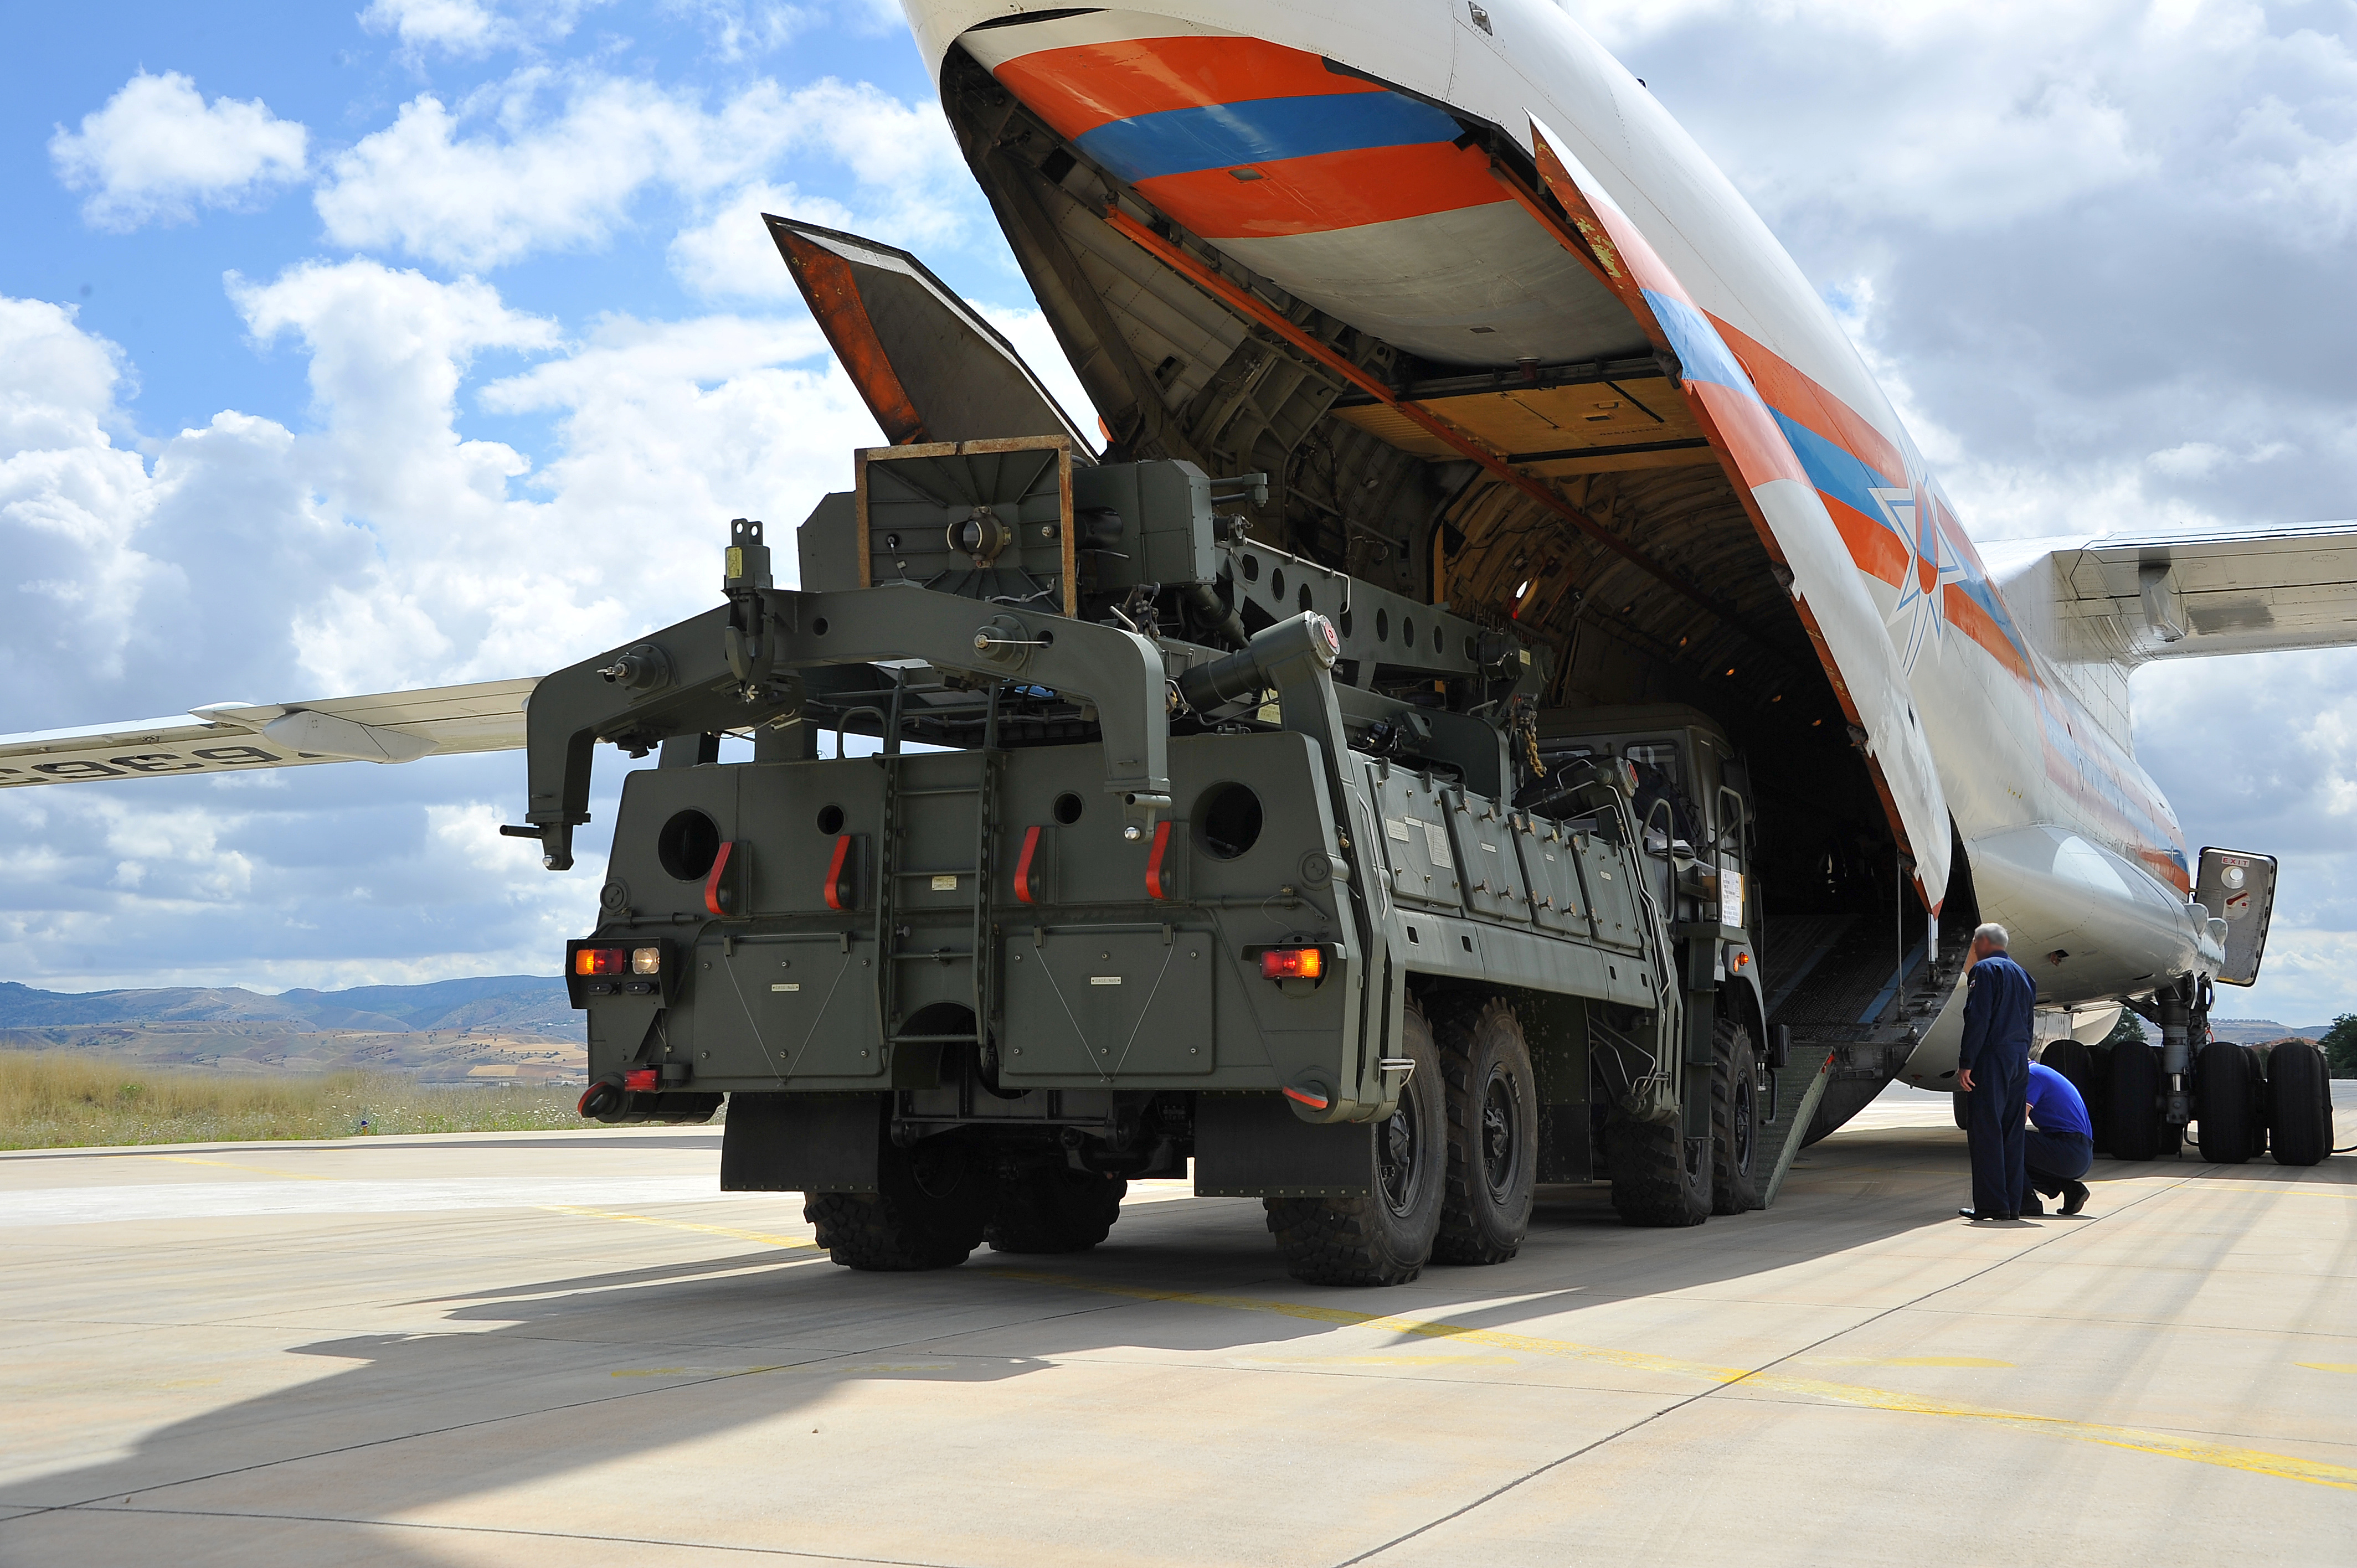 The first part of a Russian S-400 anti-aircraft missile system is seen here, being unloaded in Turkey. (Reuters)